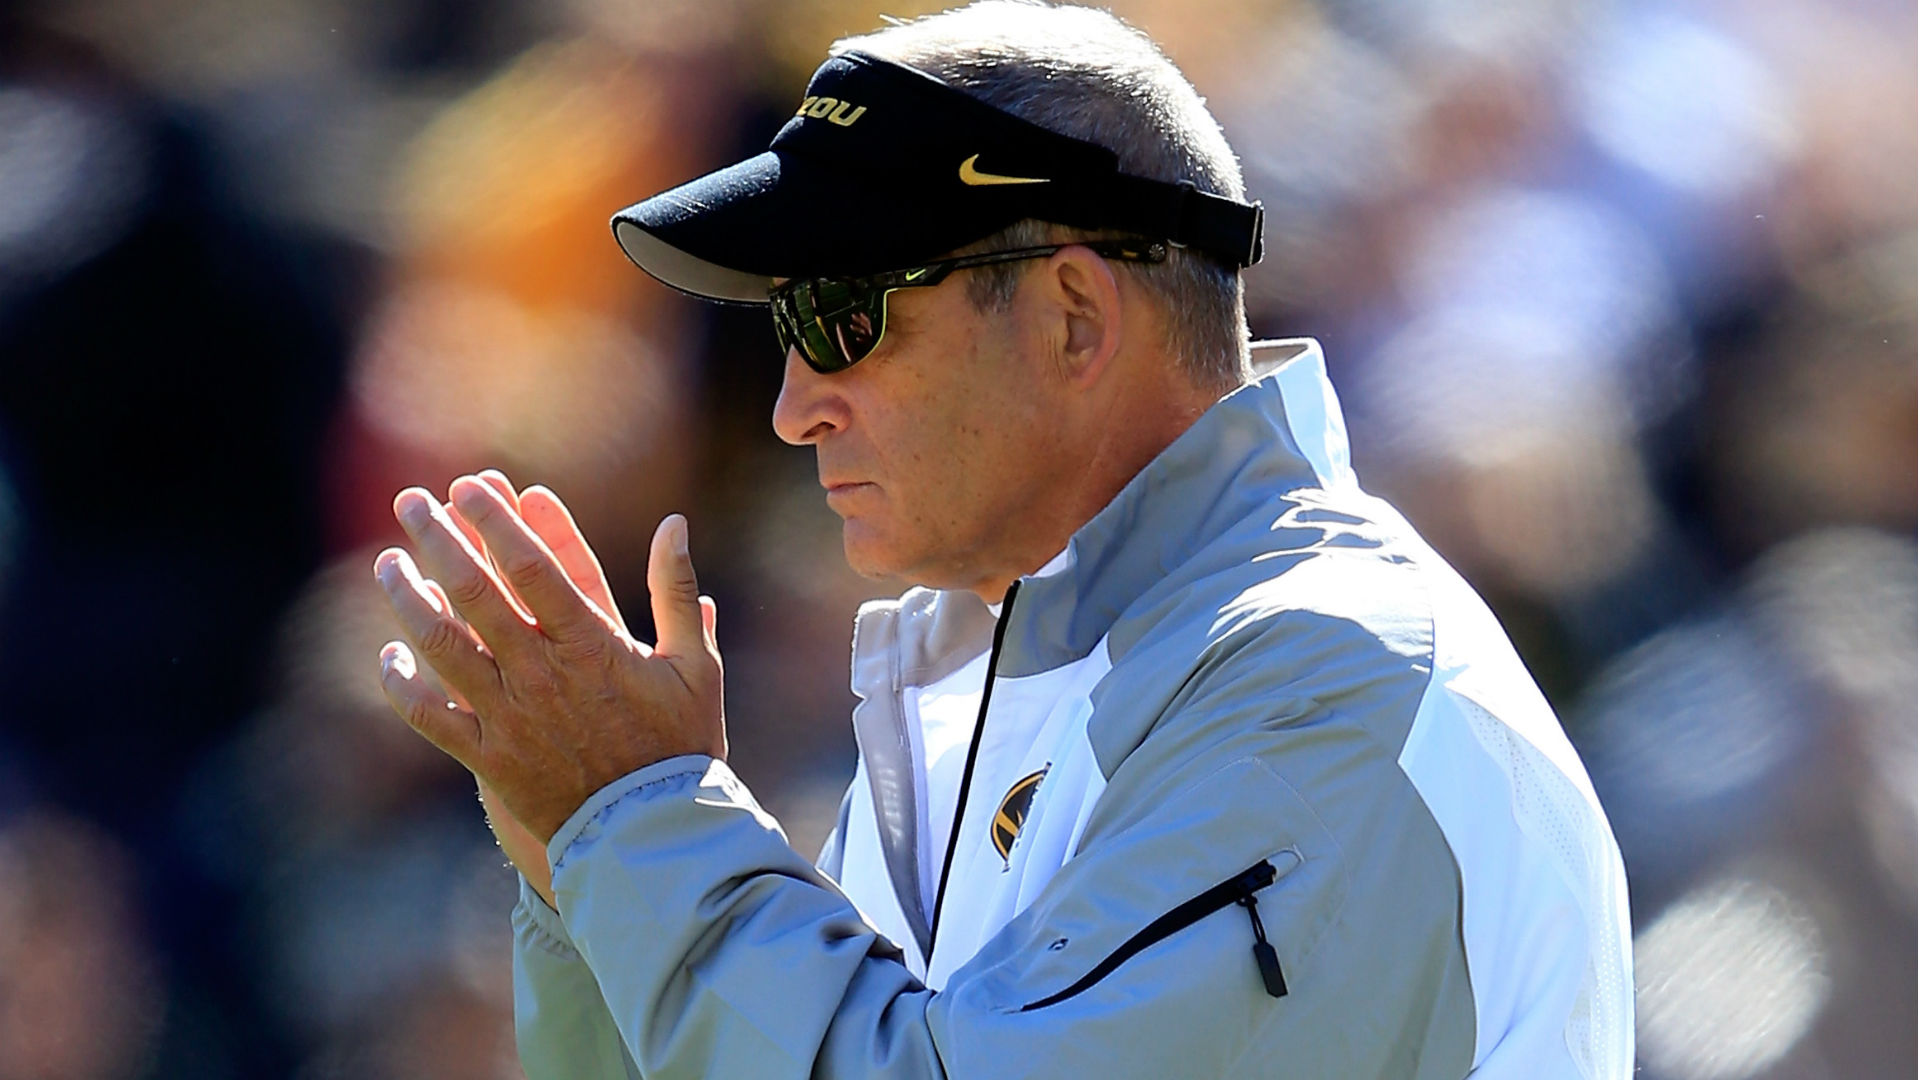 Missouri extends contract of coach Gary Pinkel through 2021 season